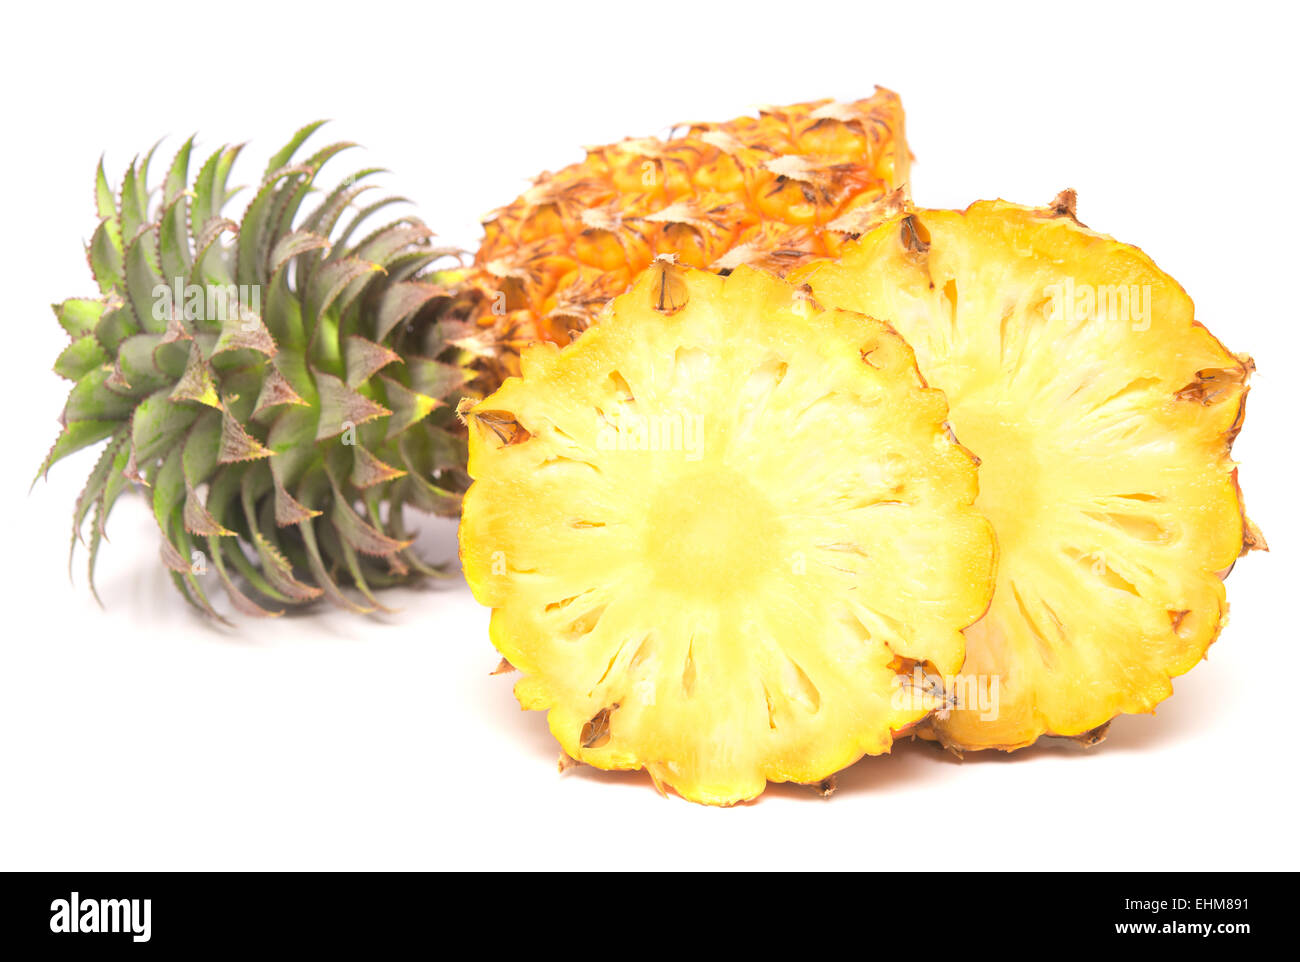 ripe fresh pineapple isolated on white background - Stock Image